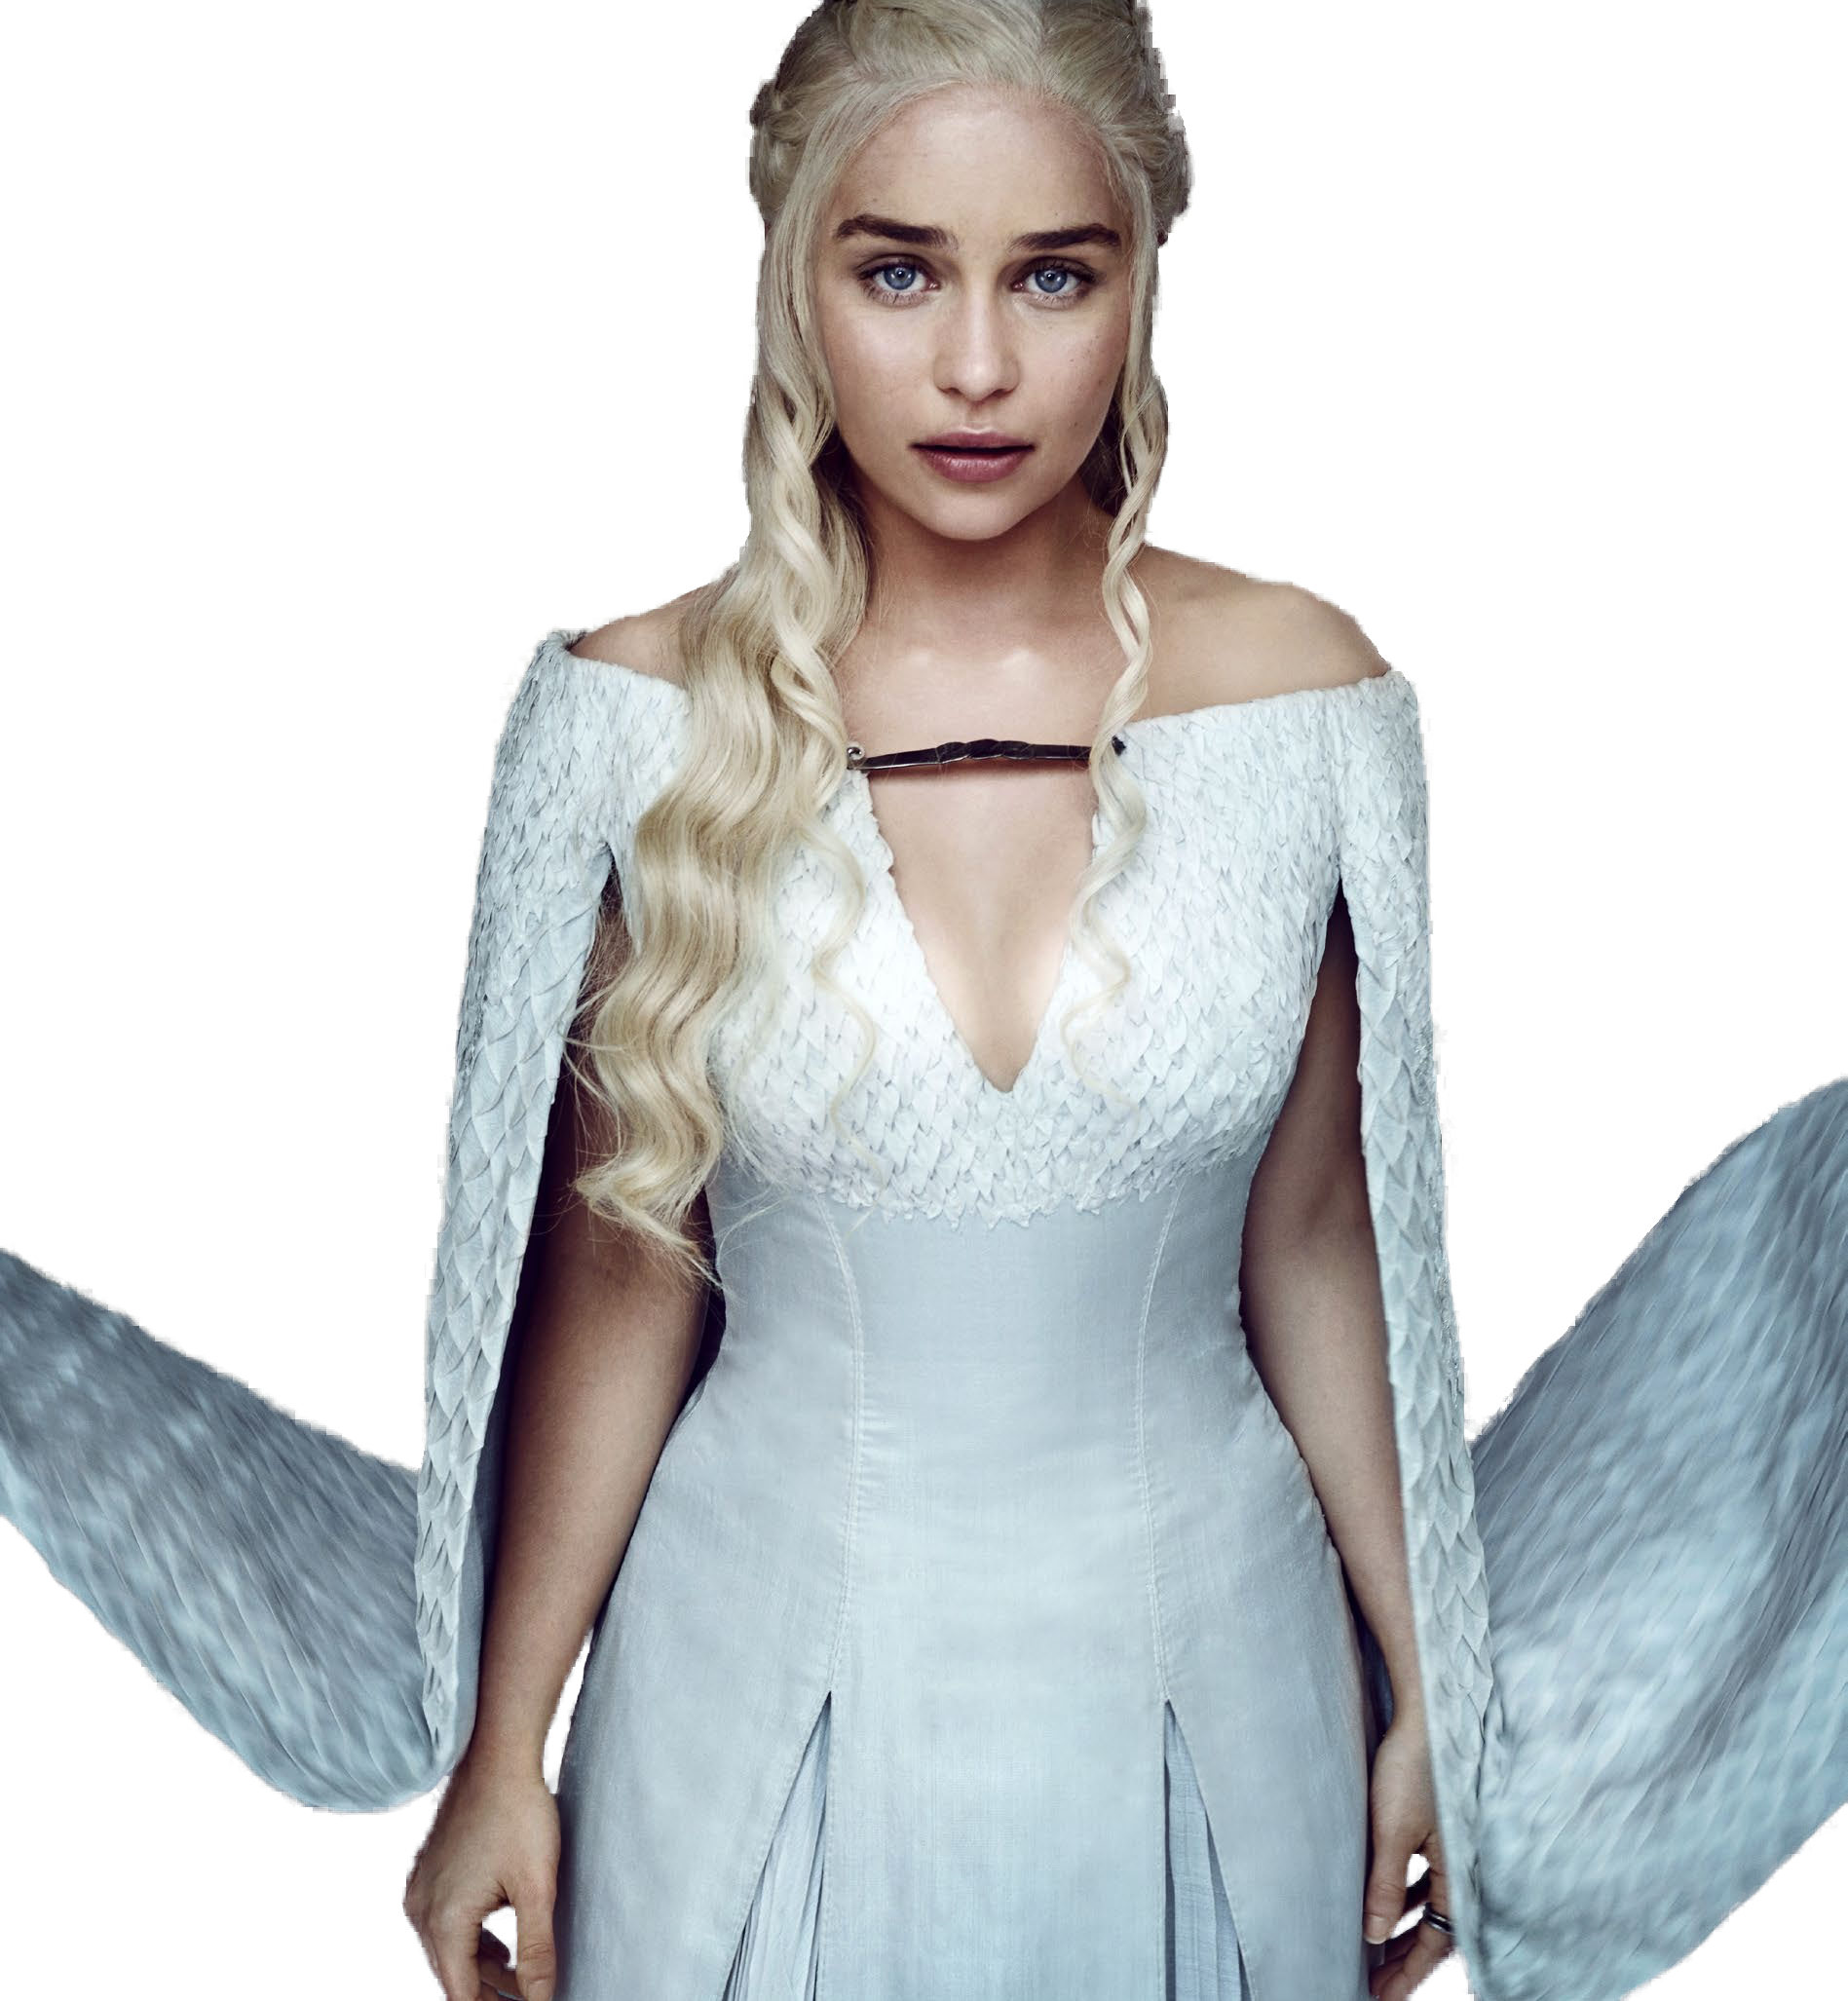 Pin By Mspirations On Png Tv Movies Daenerys Targaryen Png Gameofthrones Daenerys Targaryen